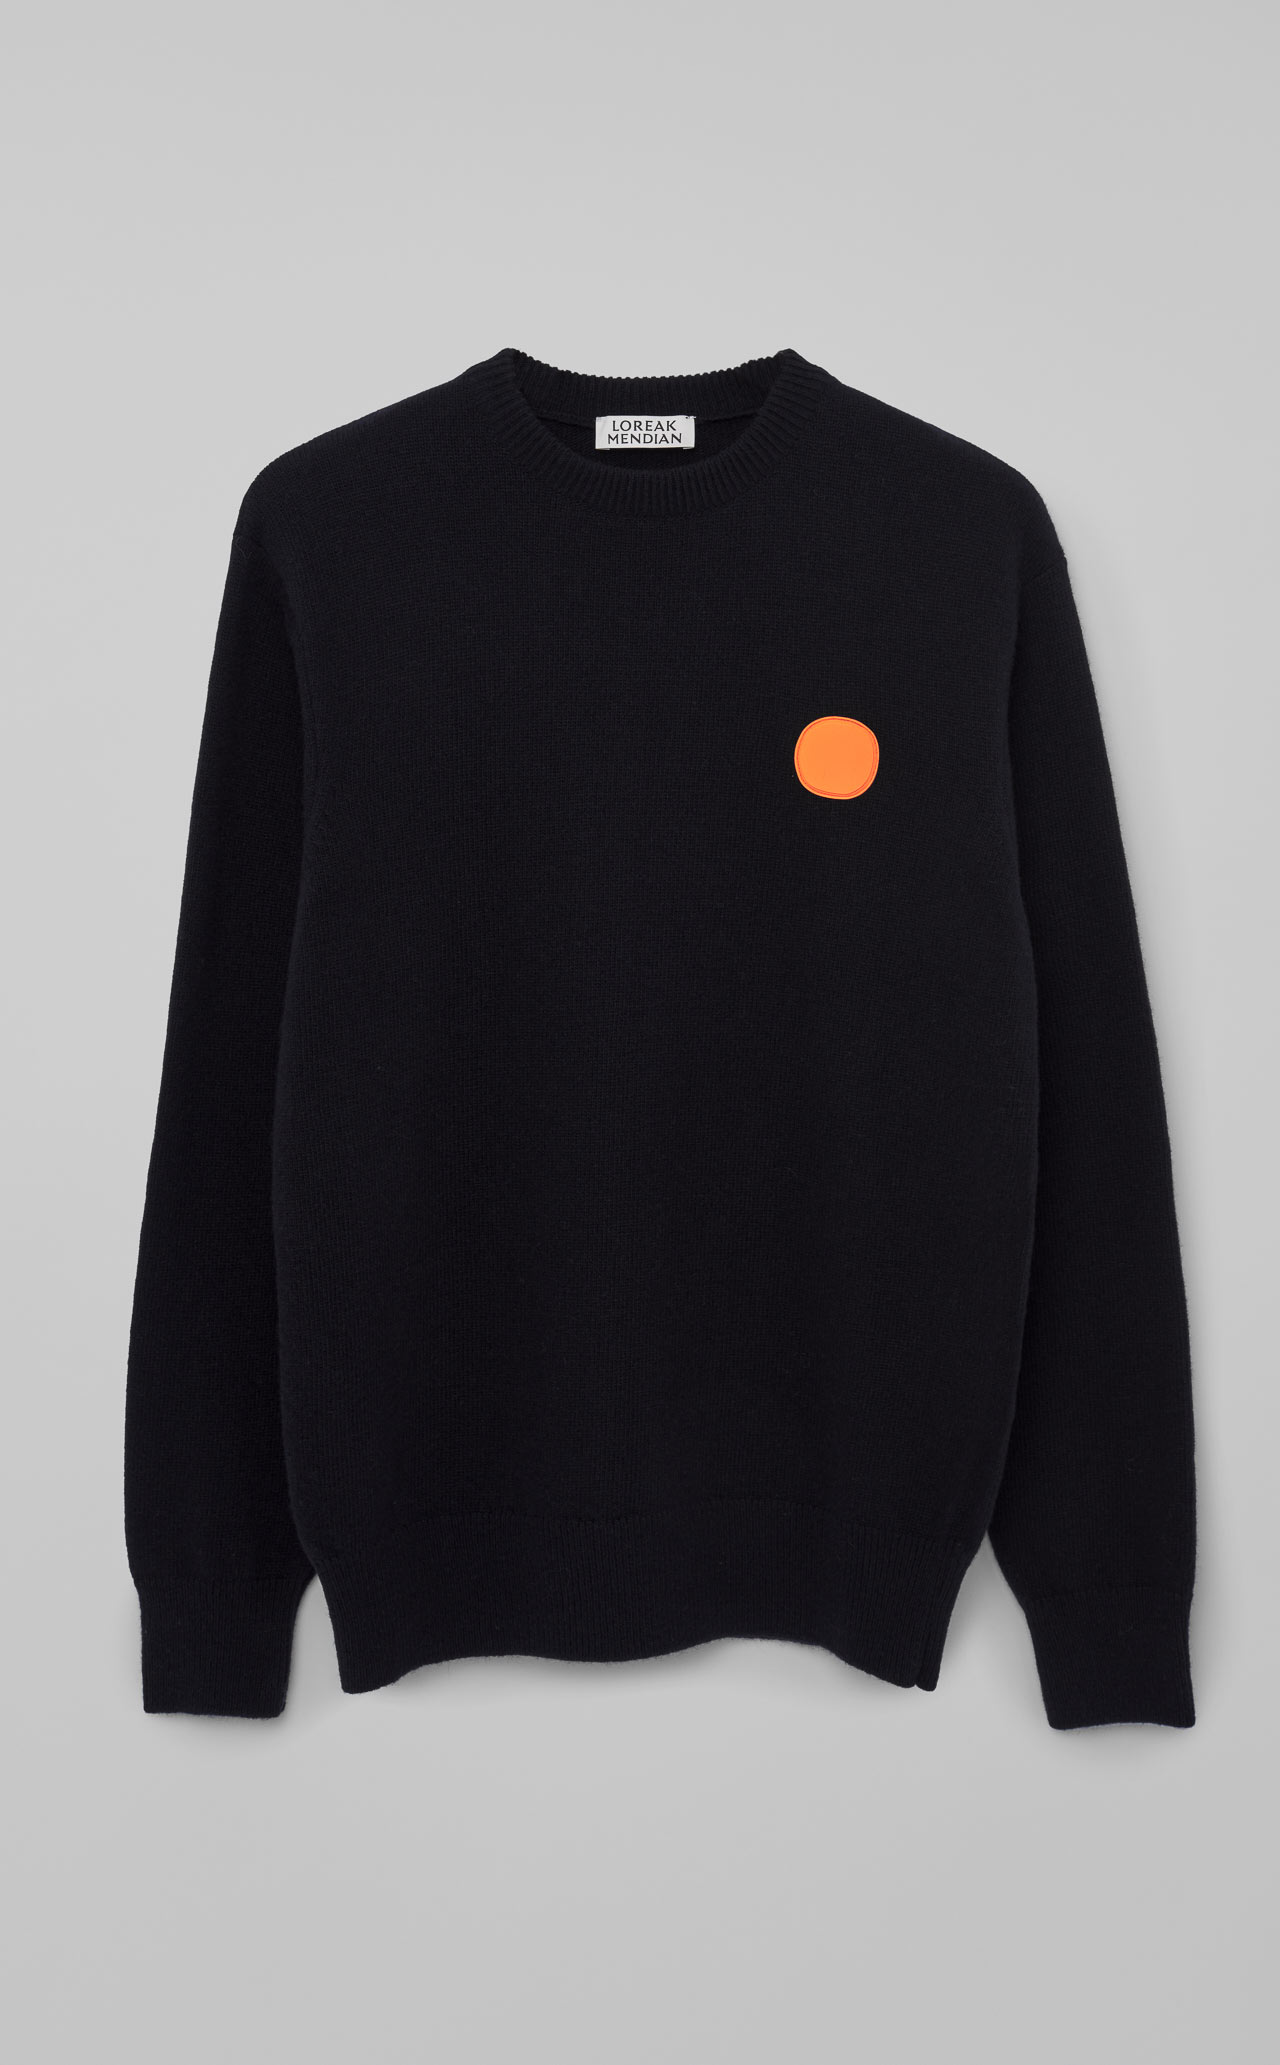 Dotgum Sweater